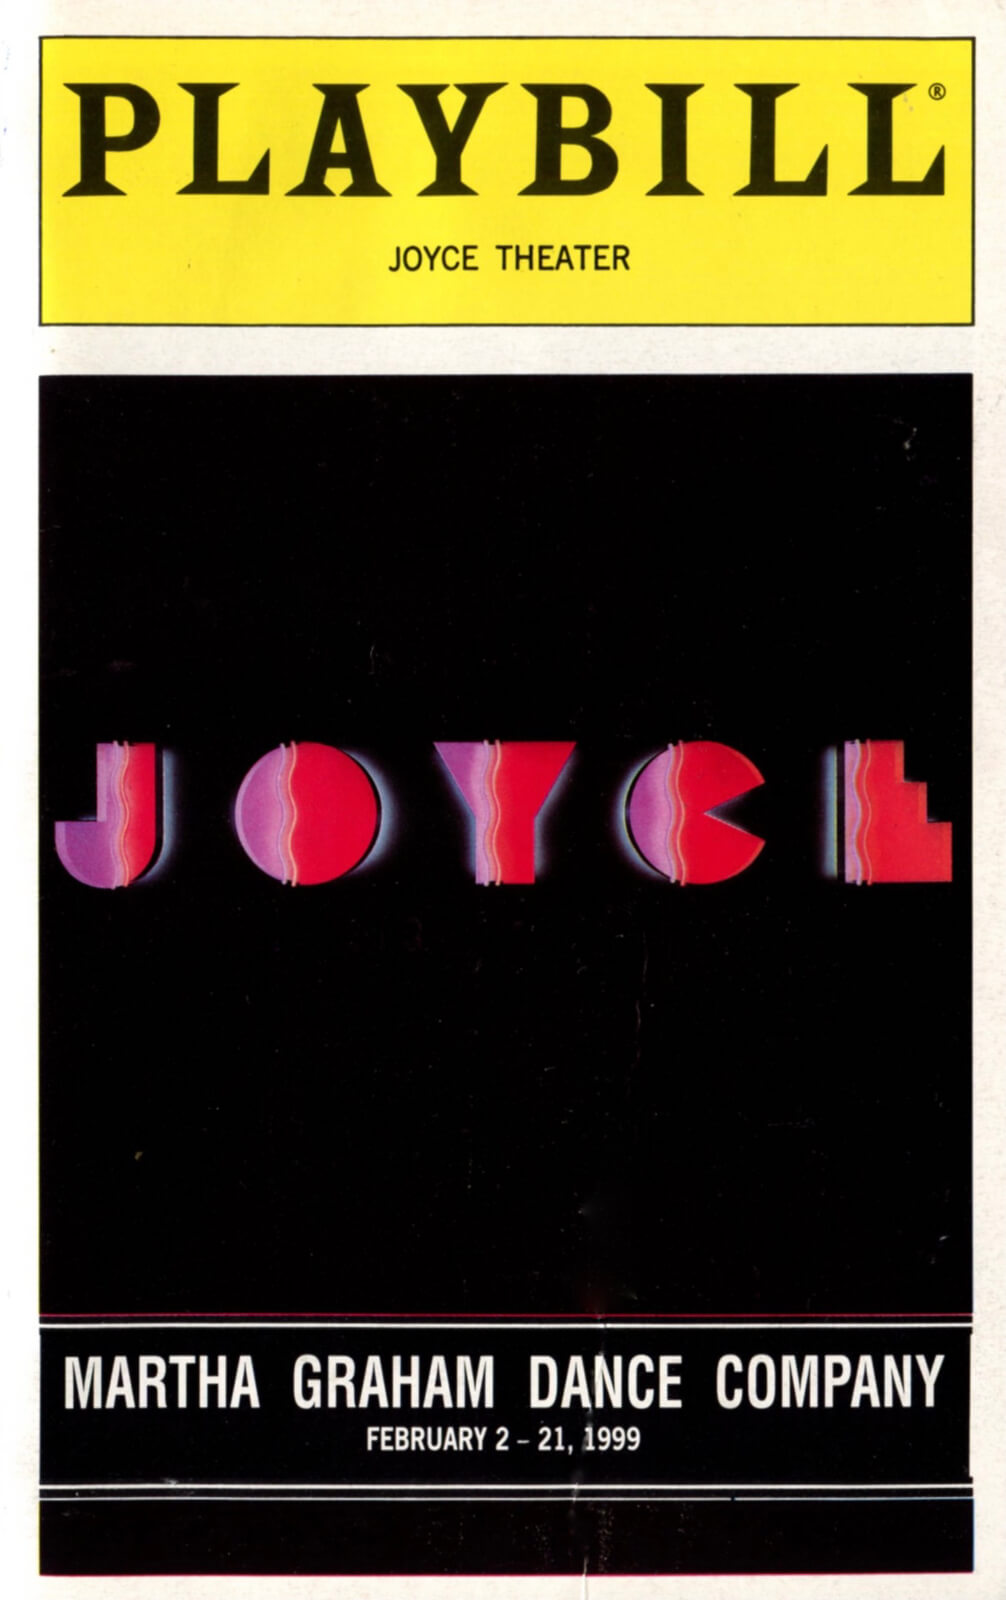 Official Playbill for the Opening Night of But Not For Me, featuring the Joyce logo.